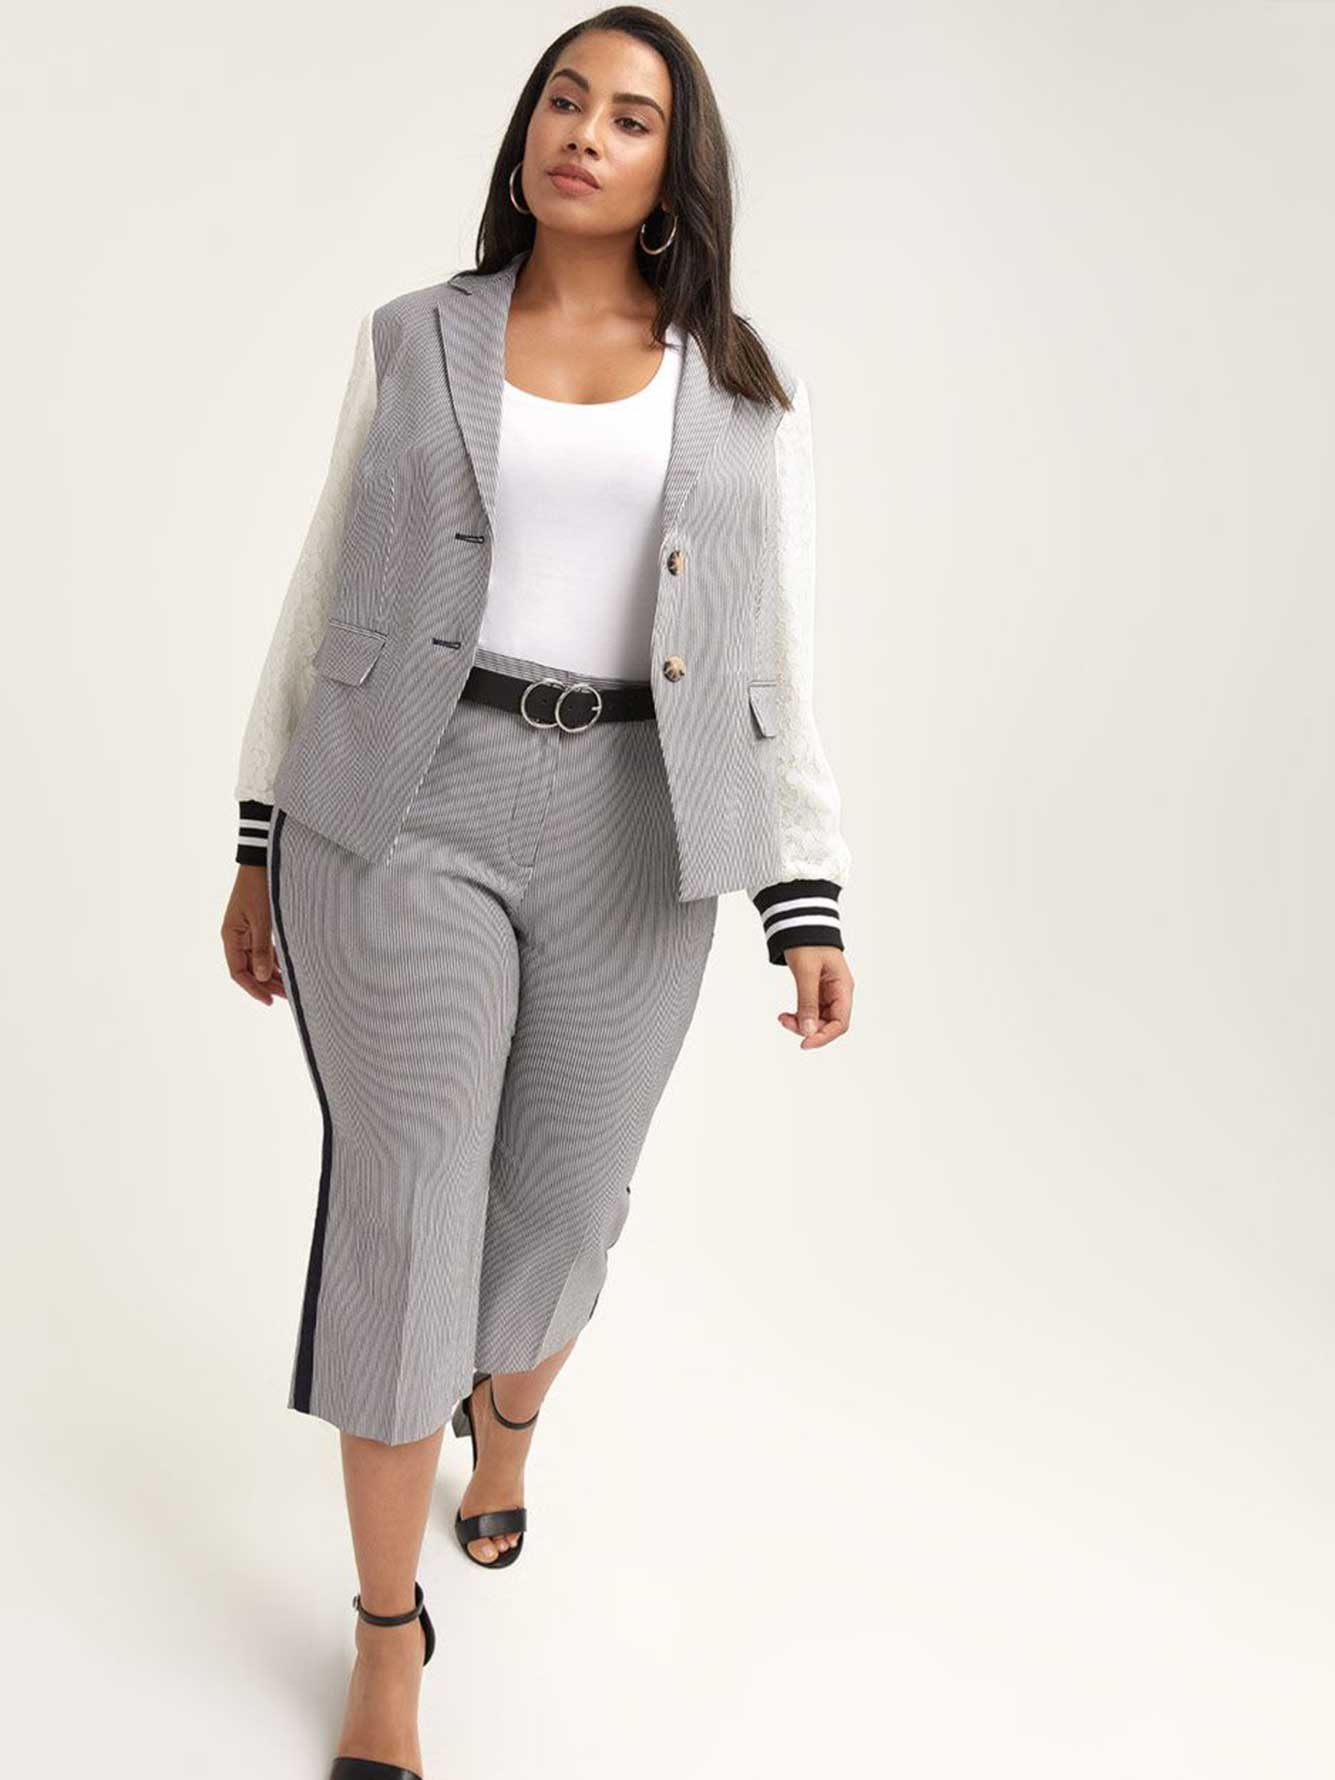 Pinstripe Billie Blazer with Mixed Fabric - RACHEL Rachel Roy